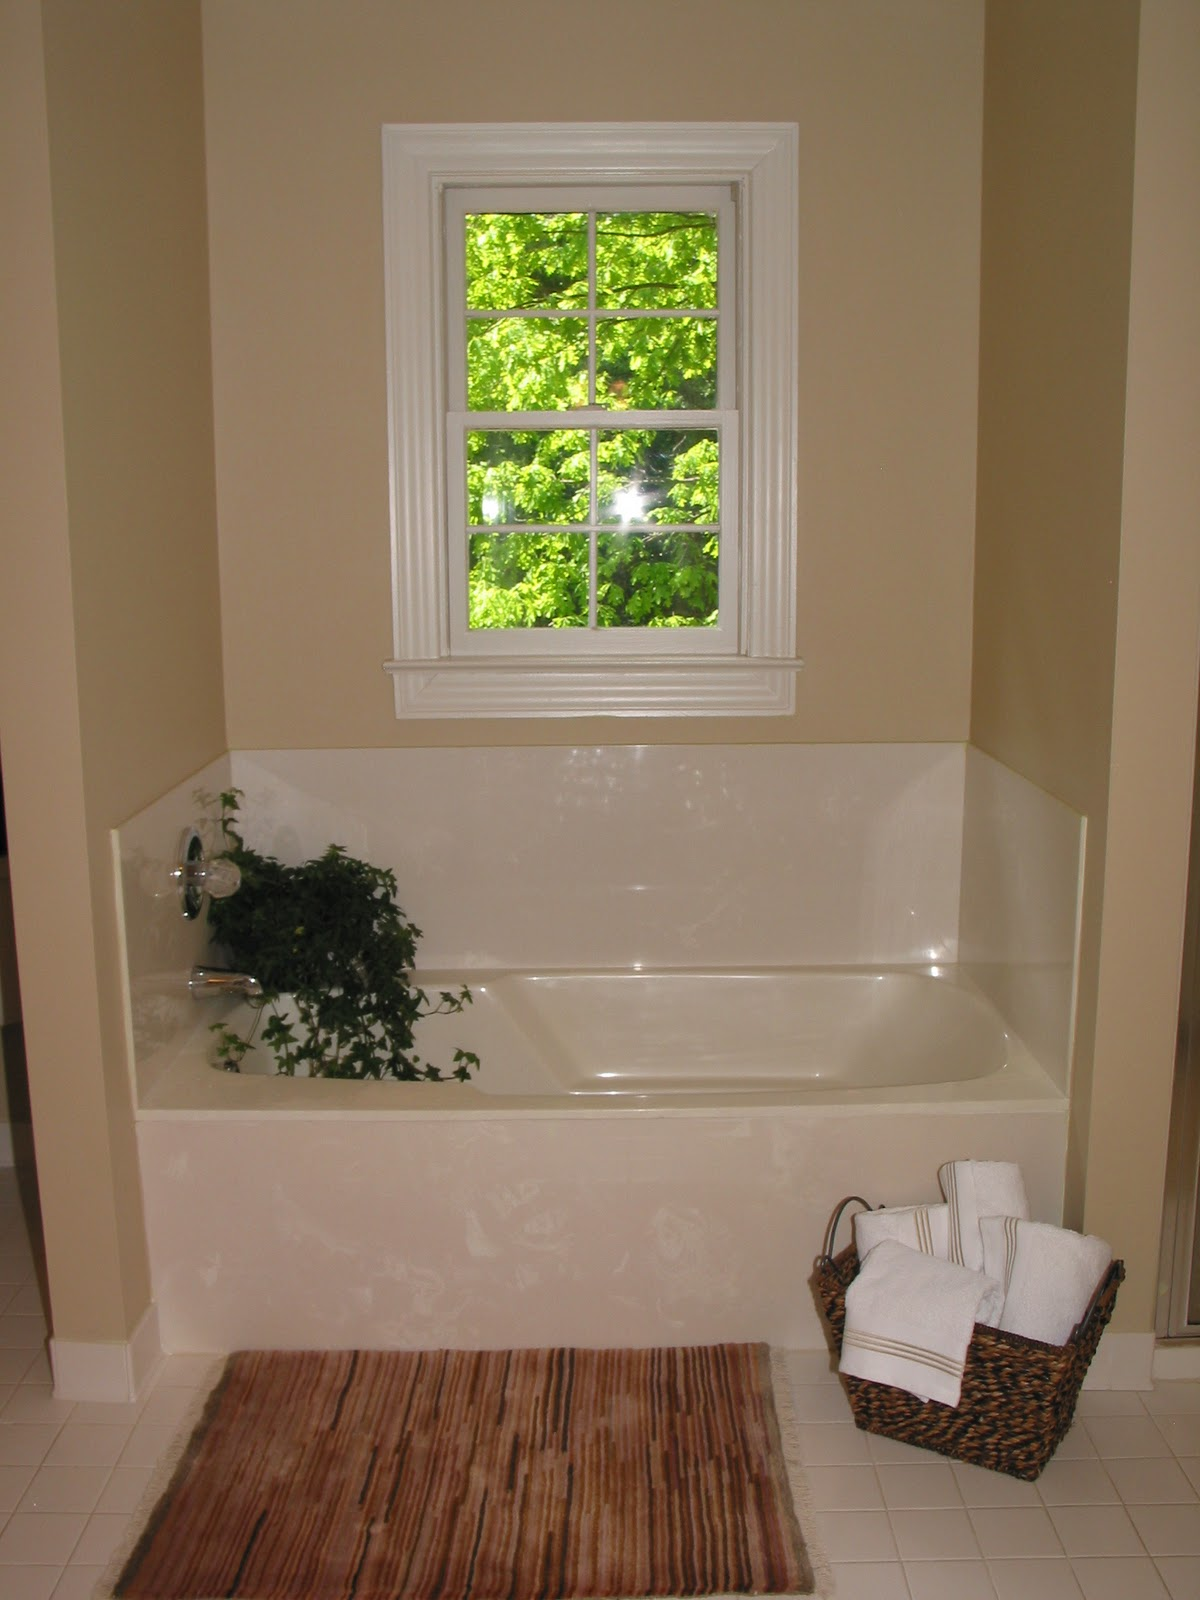 blog home staging a bathroom vignette ideas too